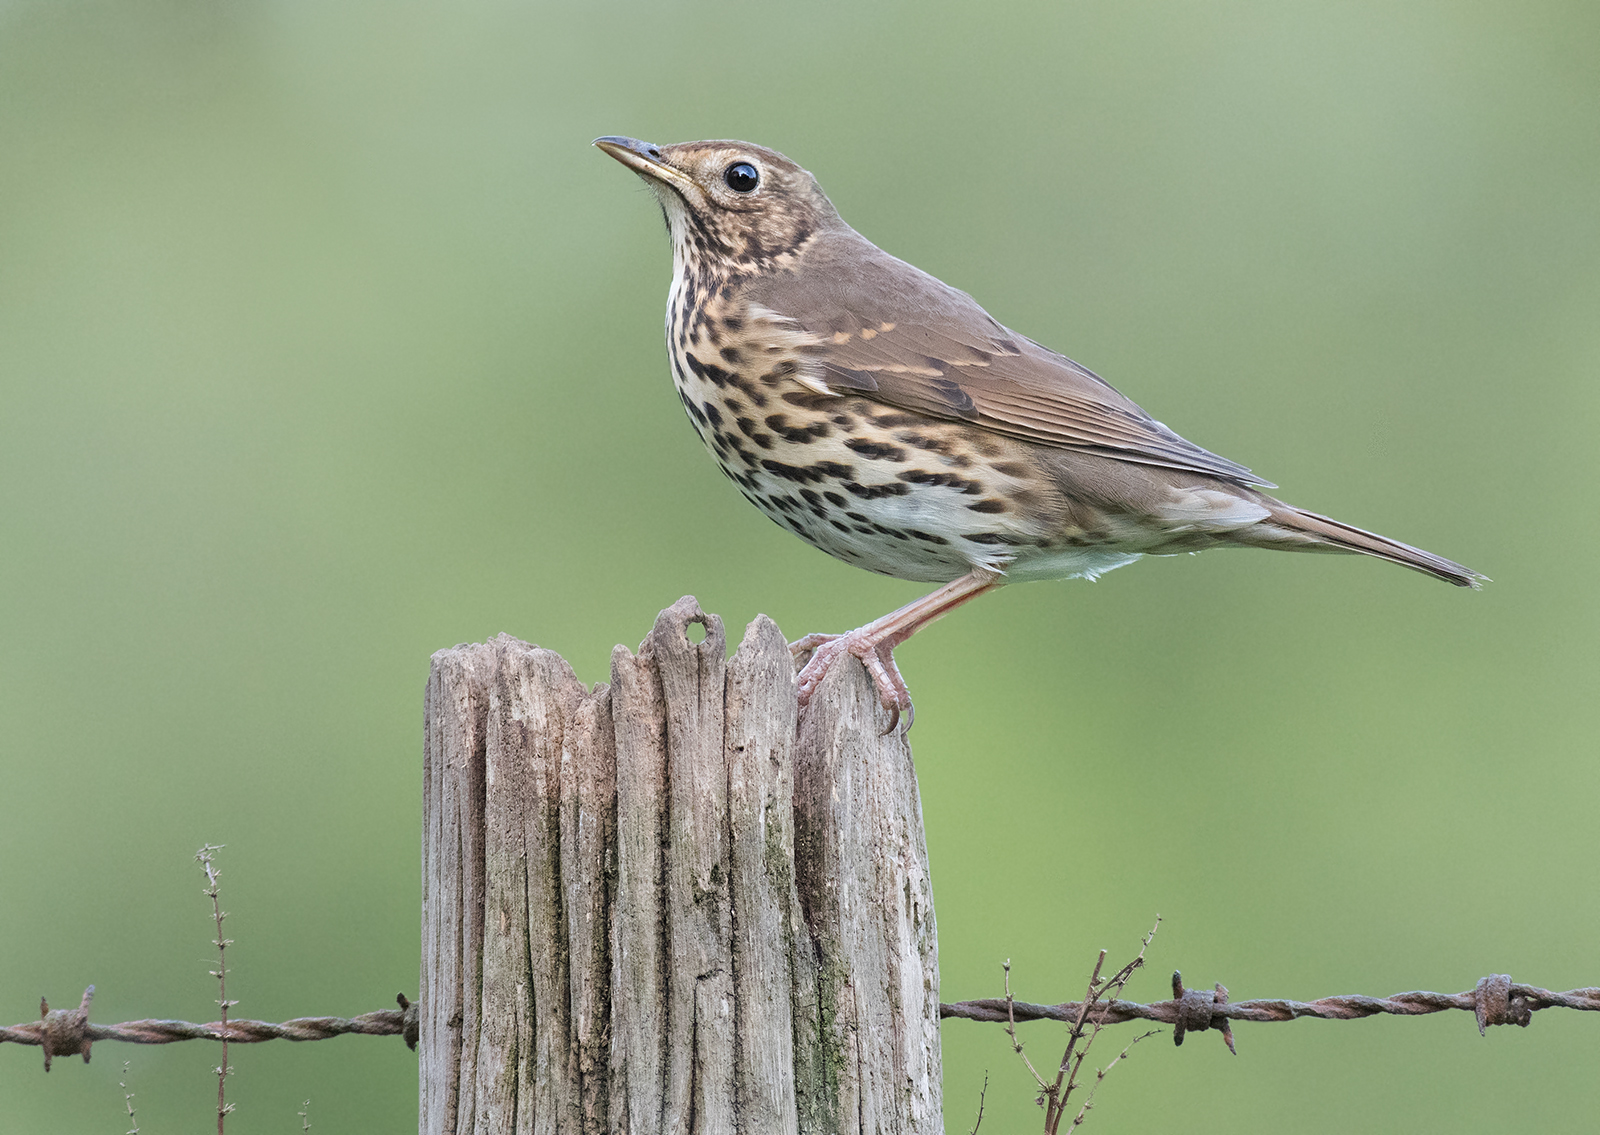 Geoff Botwood_Song Thrush_None